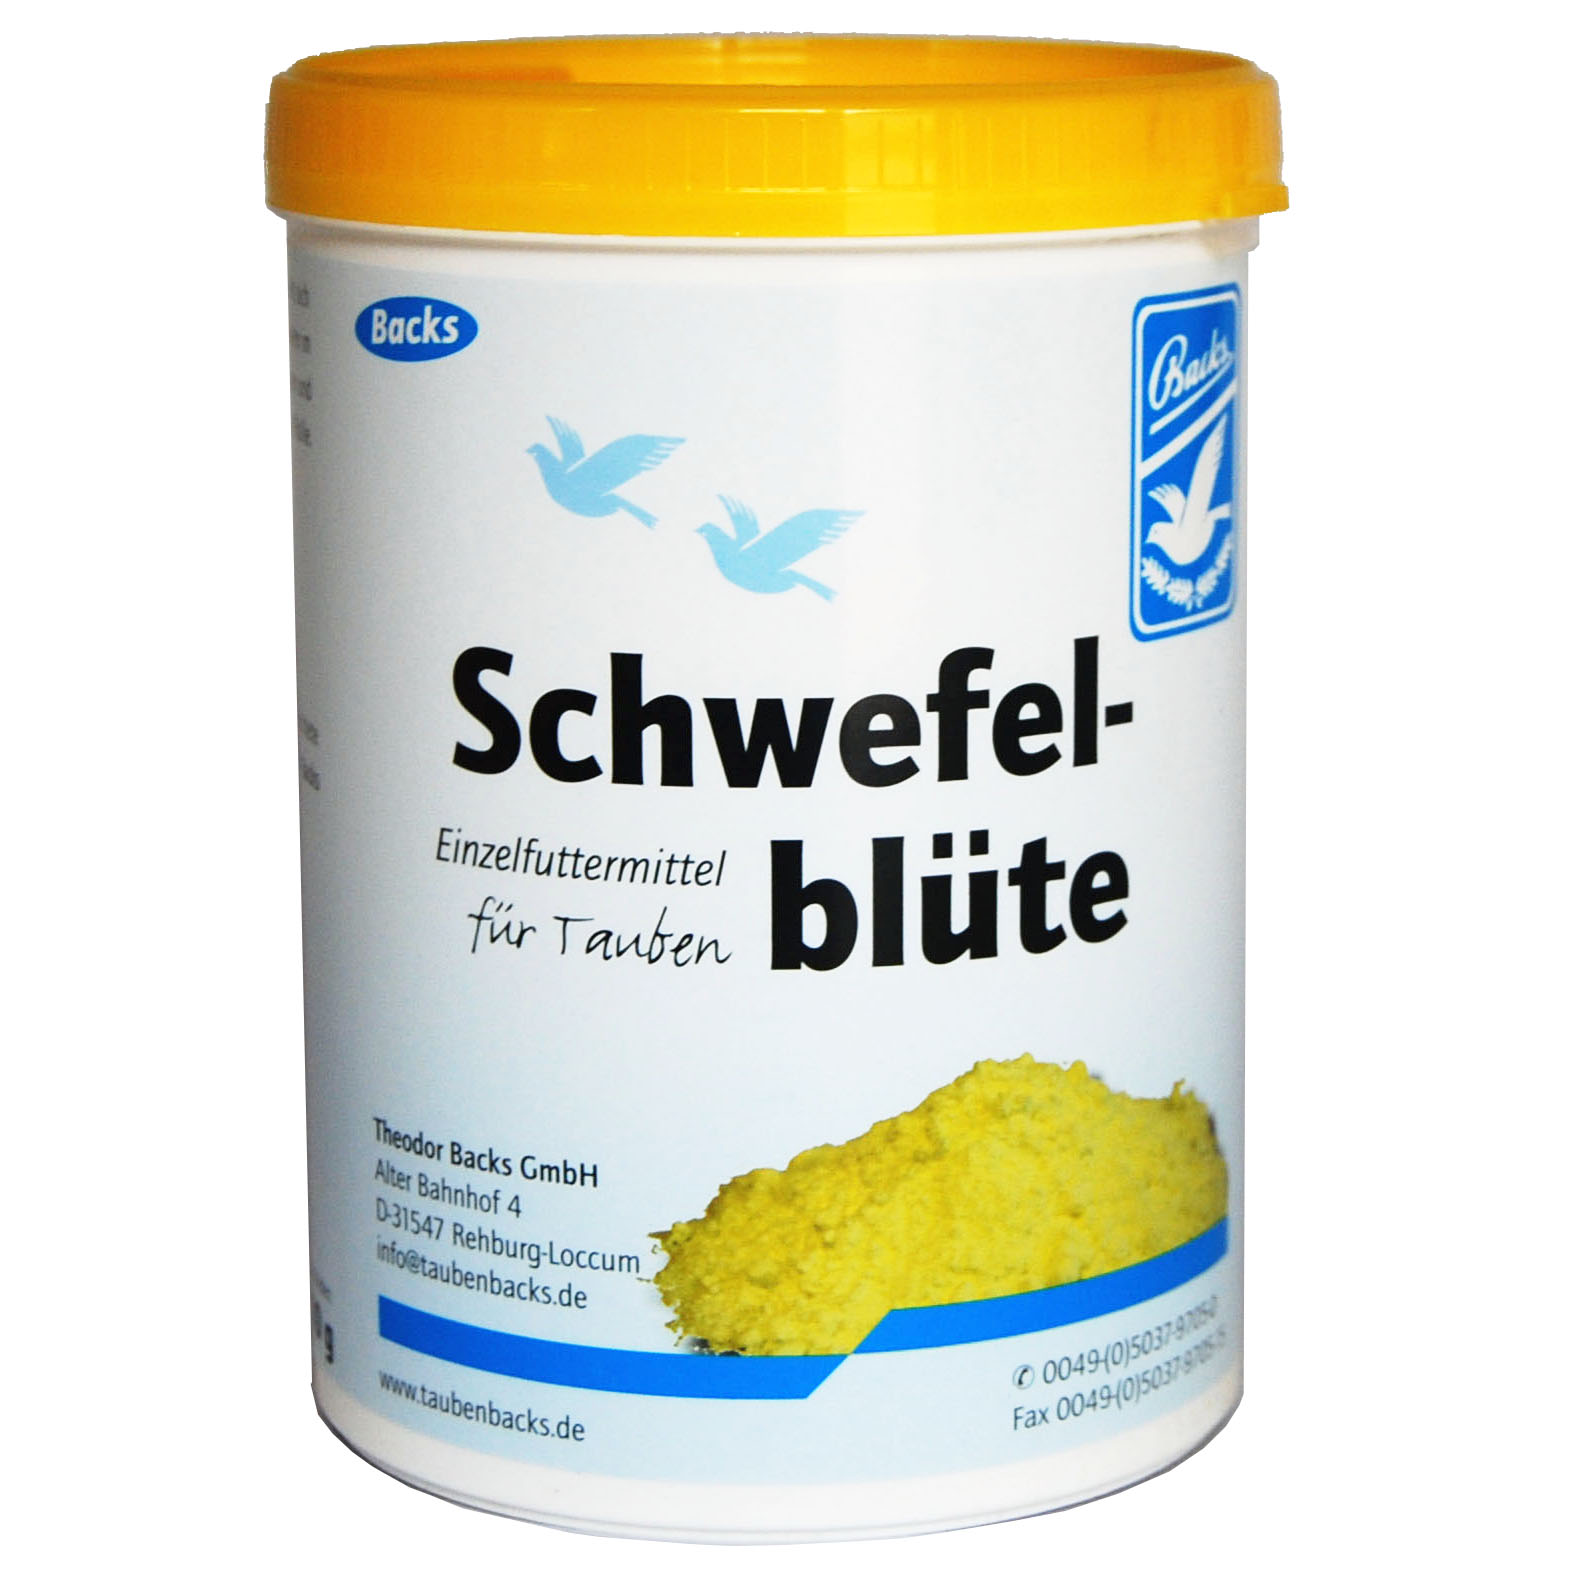 Schewefel Blute Backs